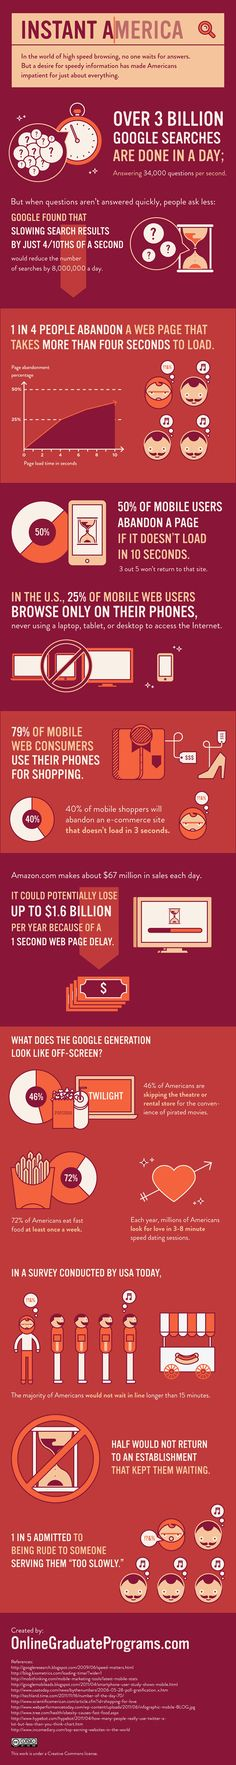 Americans Don't Have Time For Slow Websites #INFOGRAPHIC #UI #WebDesign